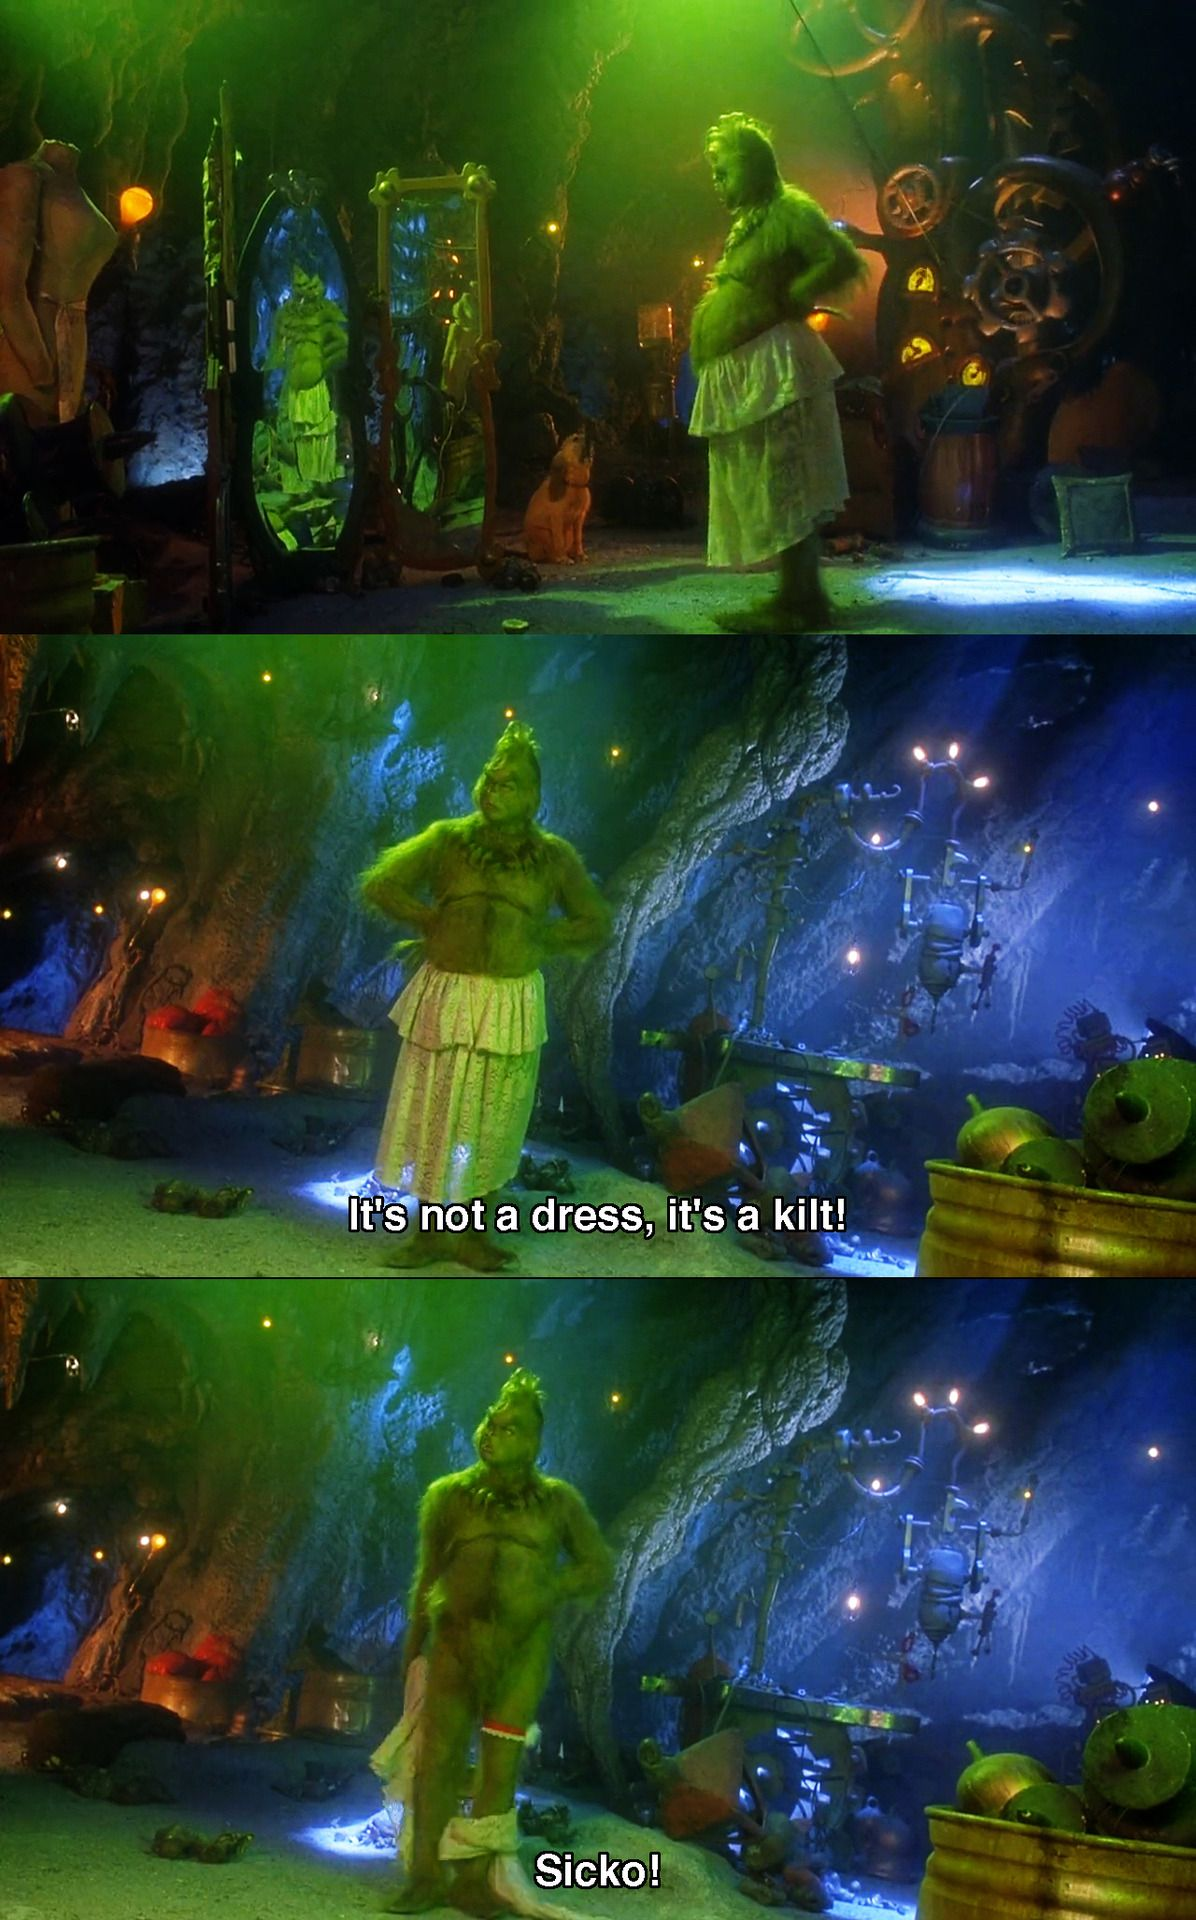 Let's Go To The Movies The grinch movie, Christmas memes